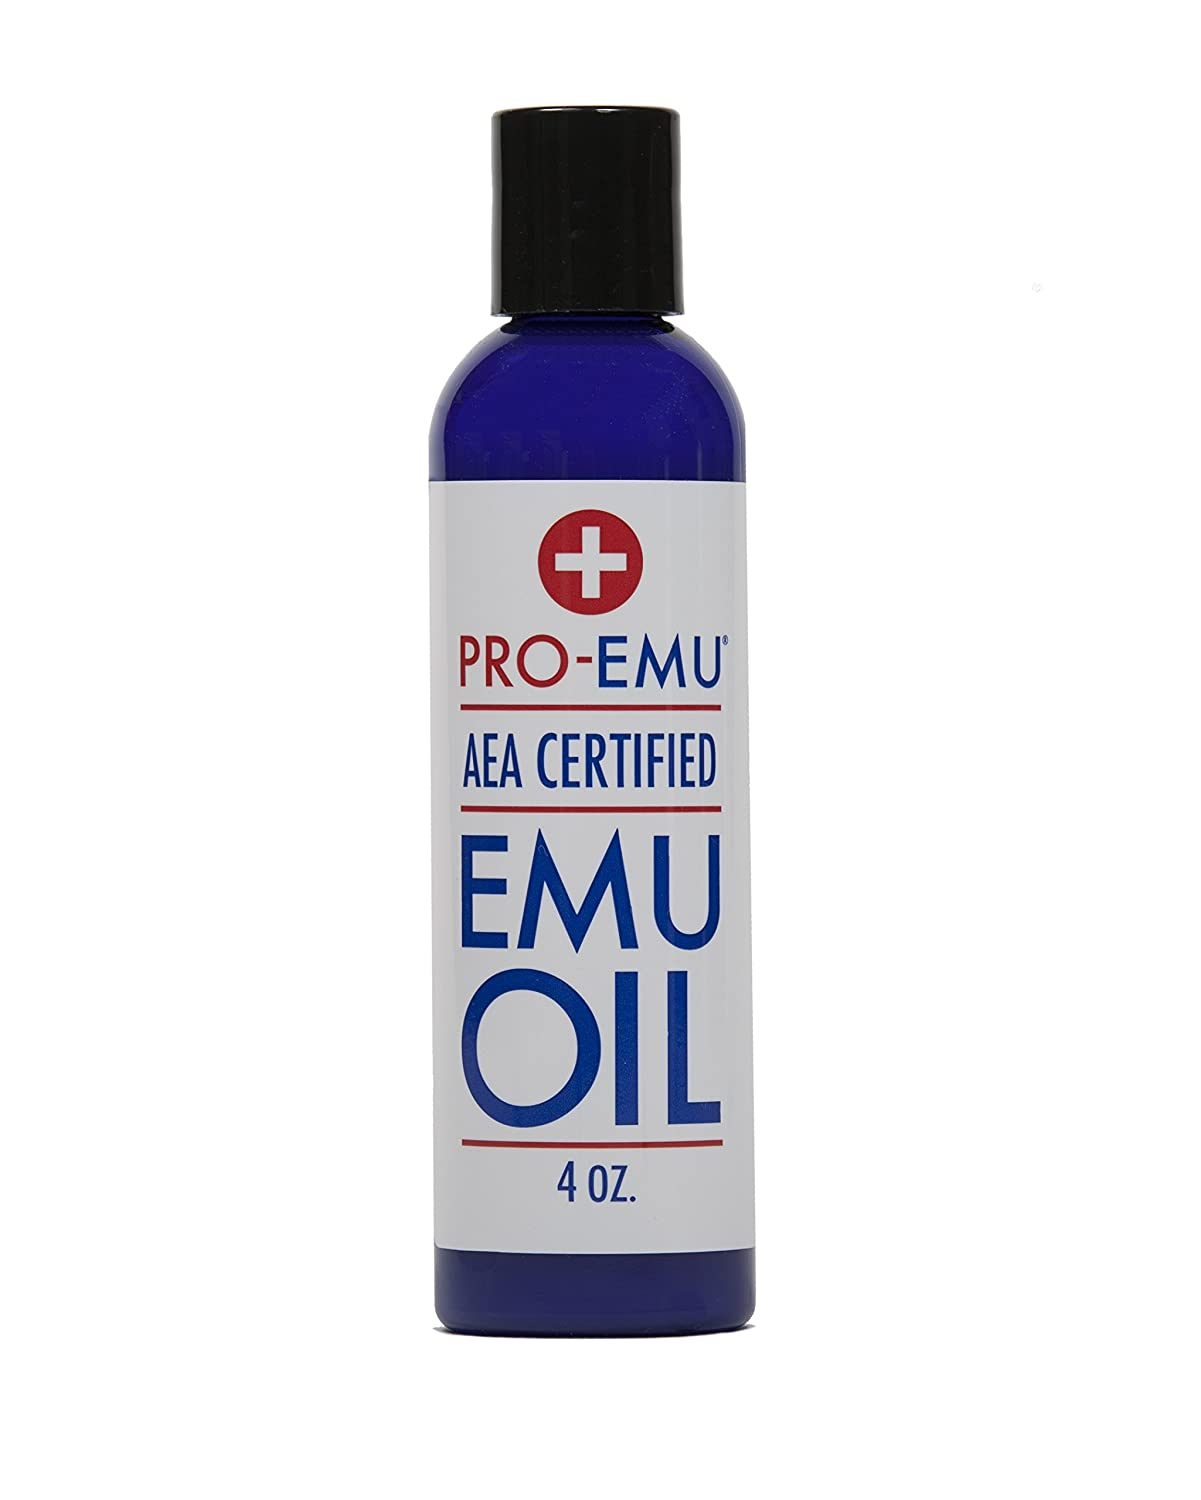 PRO EMU OIL (4 oz) Pure All Natural Emu Oil - AEA Certified - Made In USA - Best All Natural Oil for Face, Skin, Hair and Nails. Excellent for Dry Skin, Burns, Sunburns, Scars, Muscles and Joints